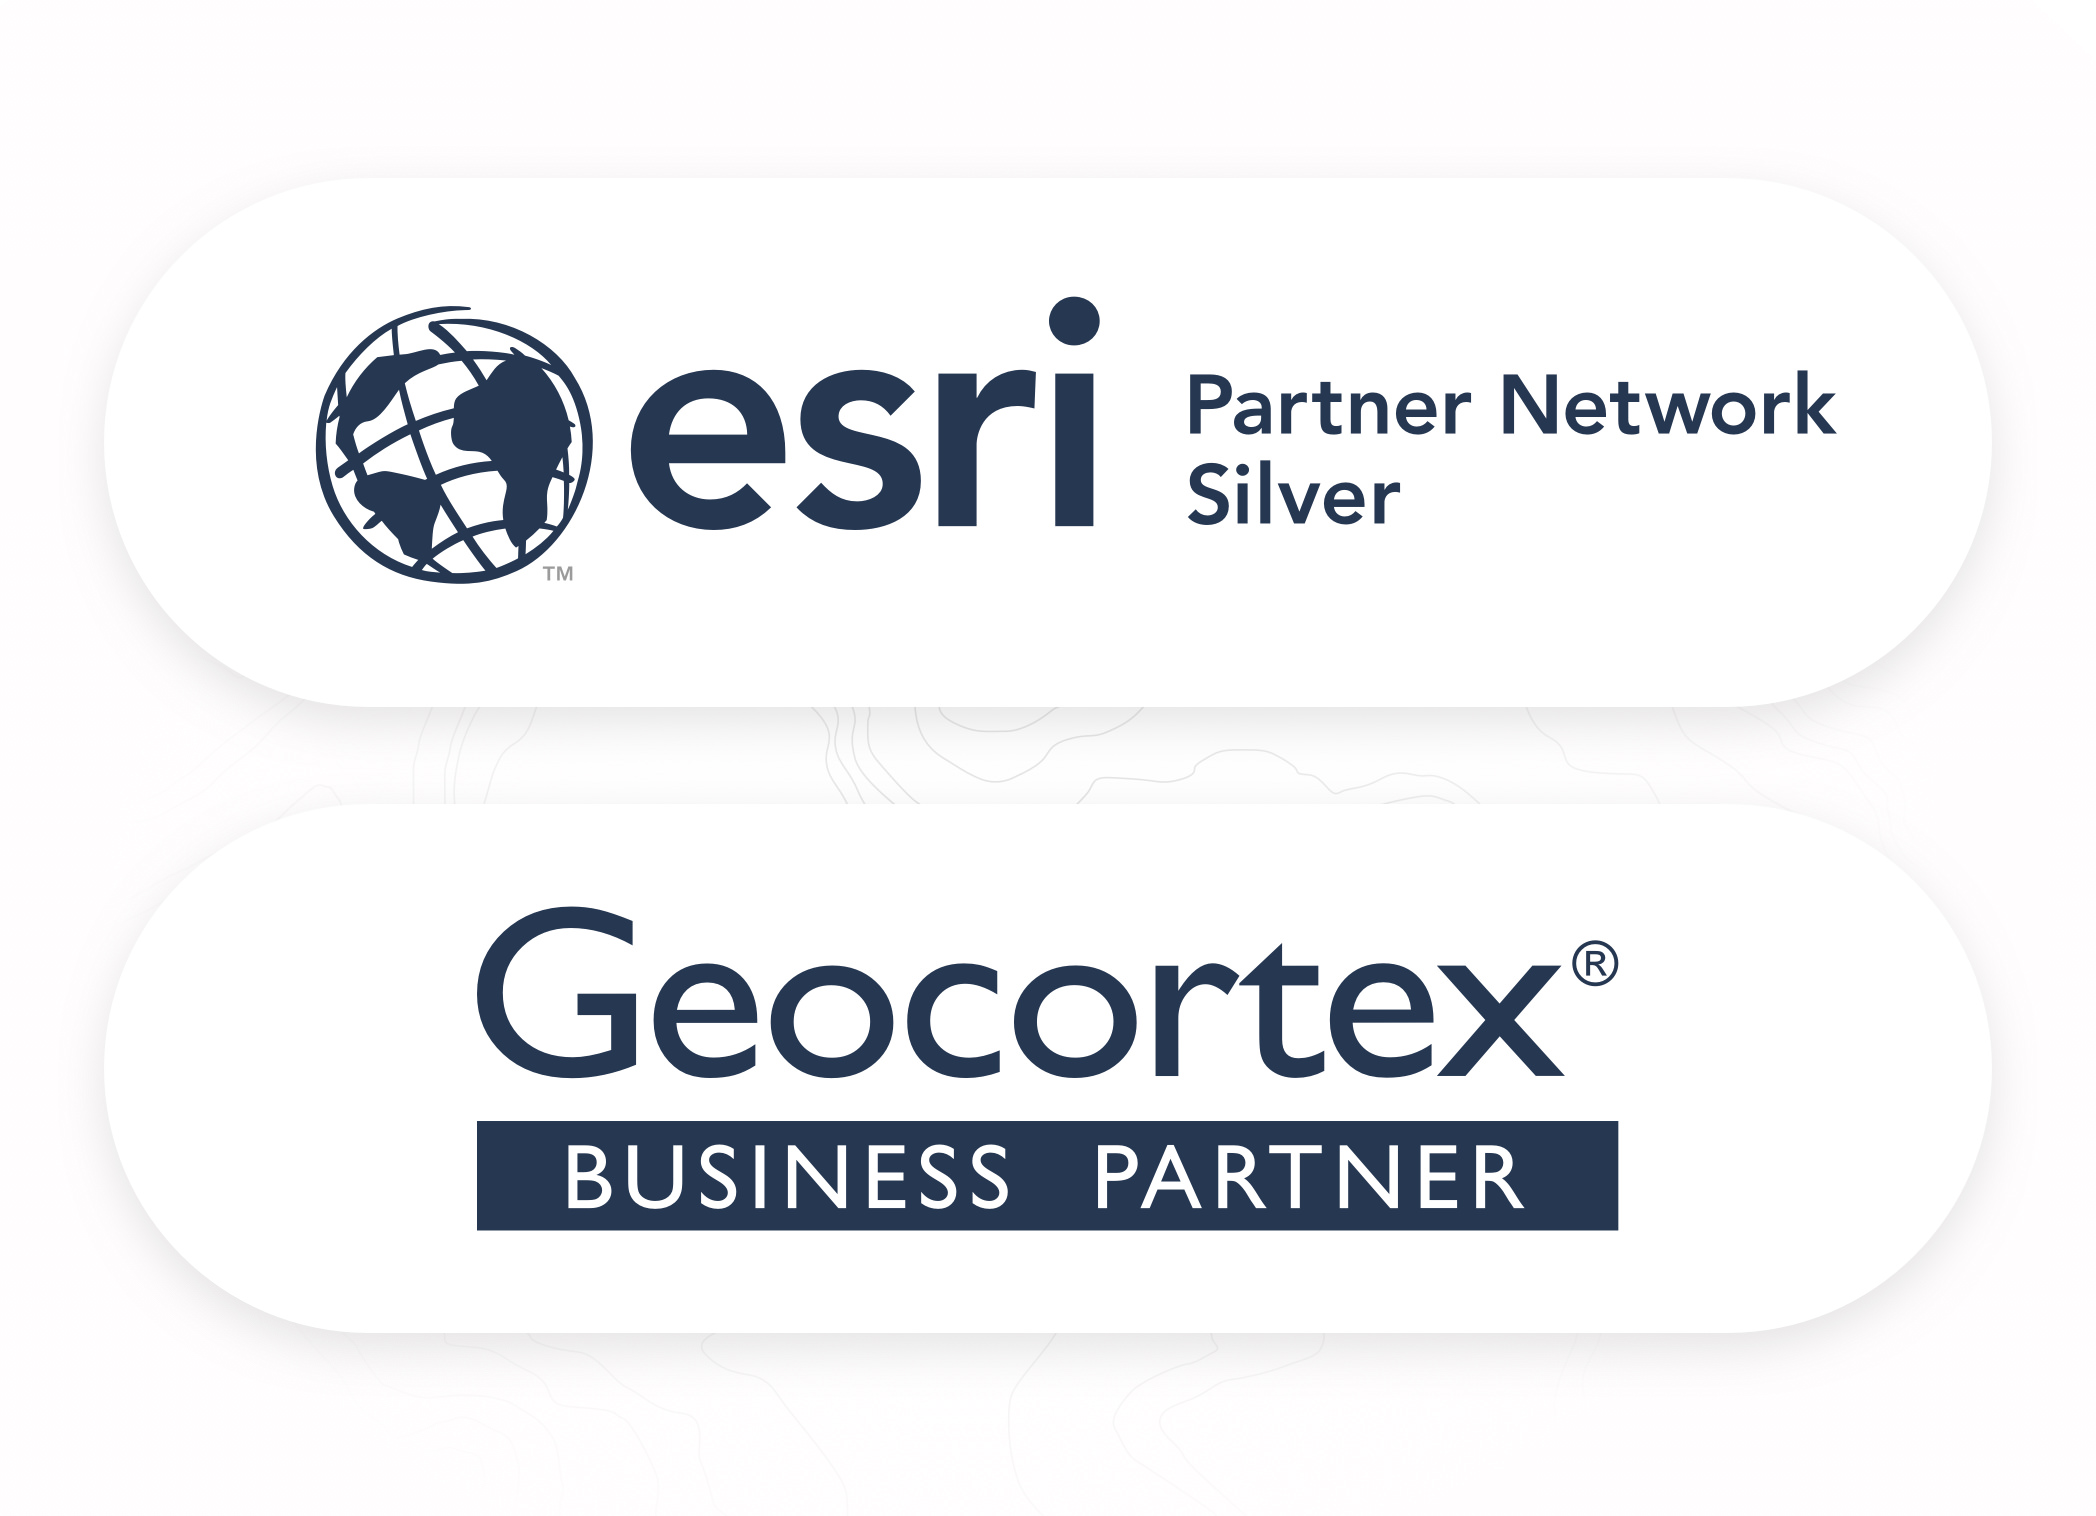 NVTX_esri-geocortex-stock.jpg